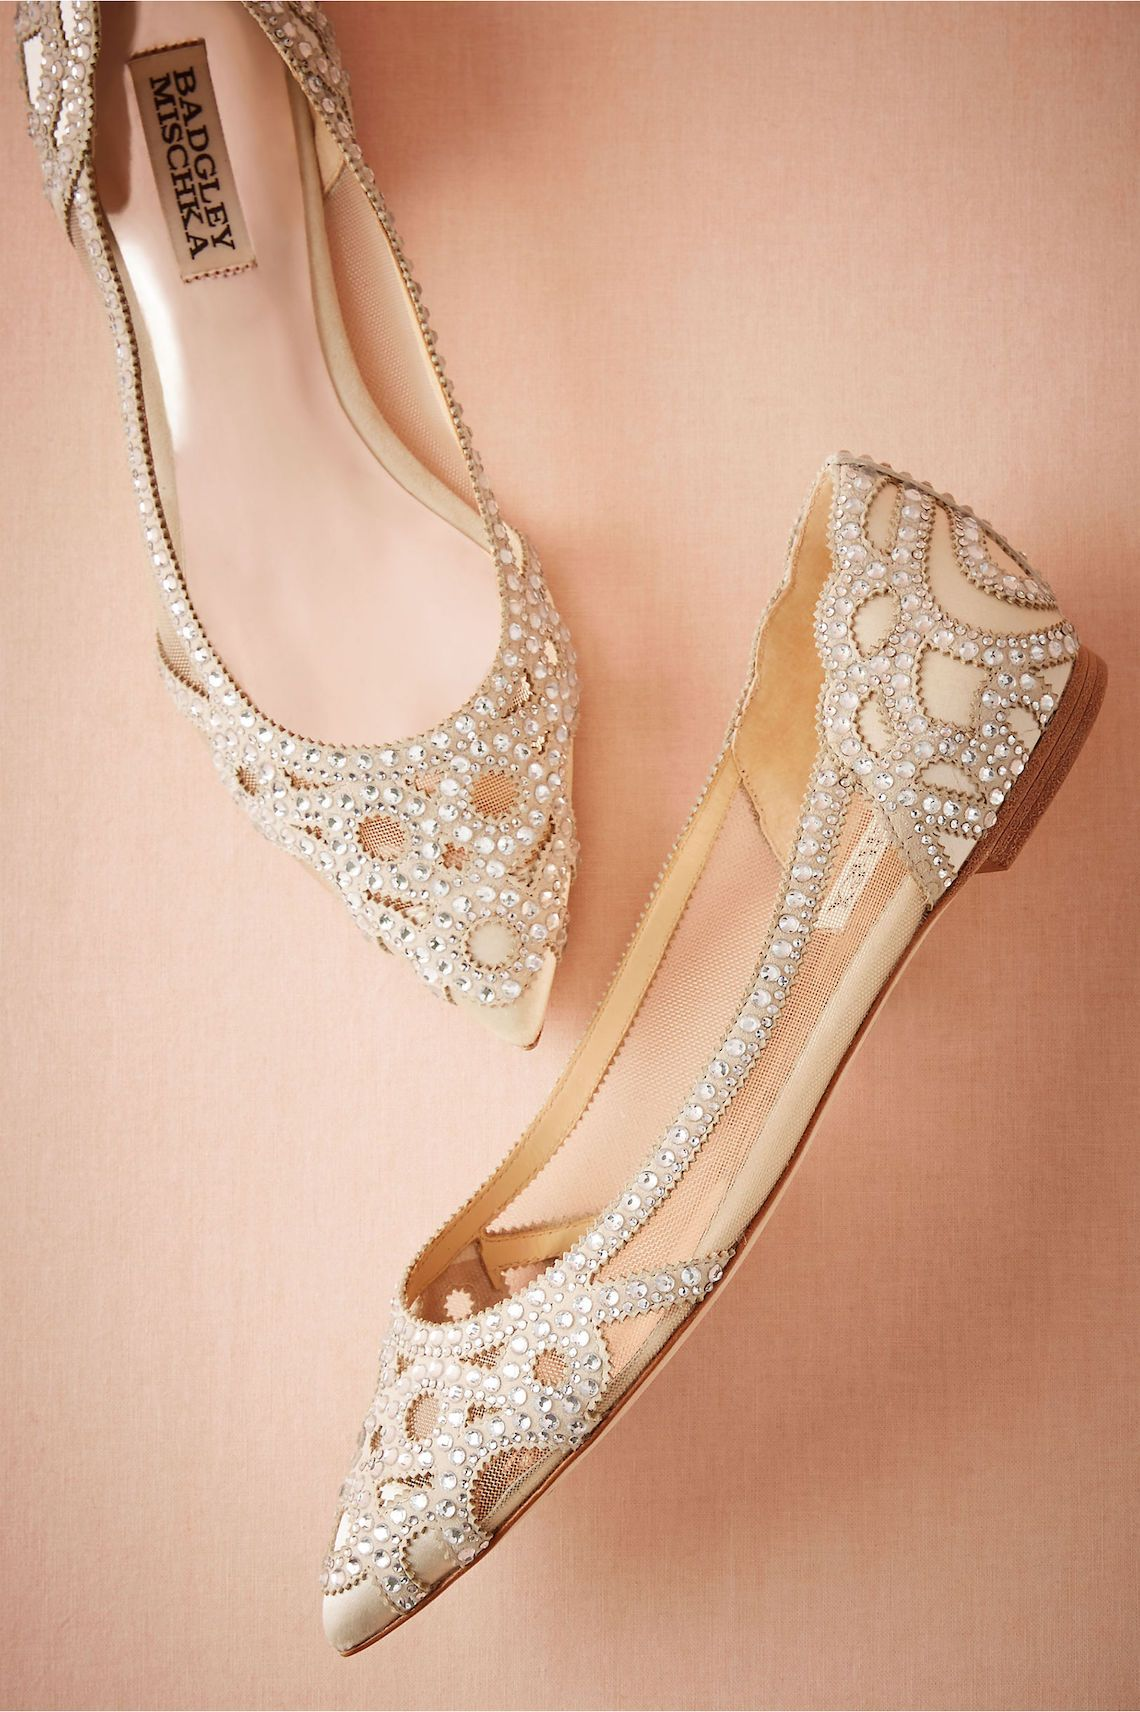 10 Flat Wedding Shoes (That Are Just As Chic As Heels